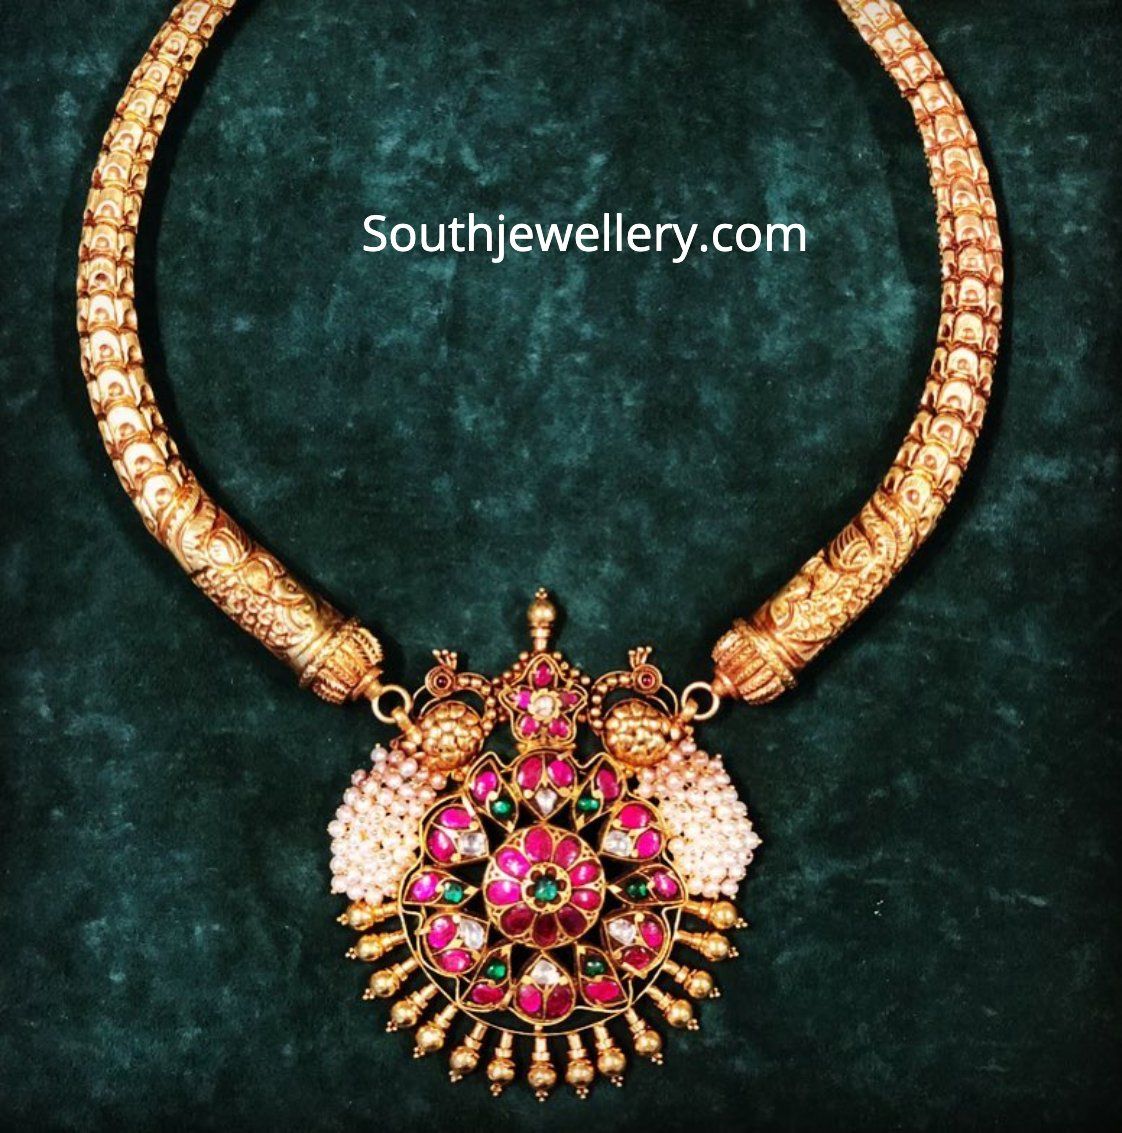 30 Beautiful Gold Kanti Necklace Designs Indian Jewellery Designs